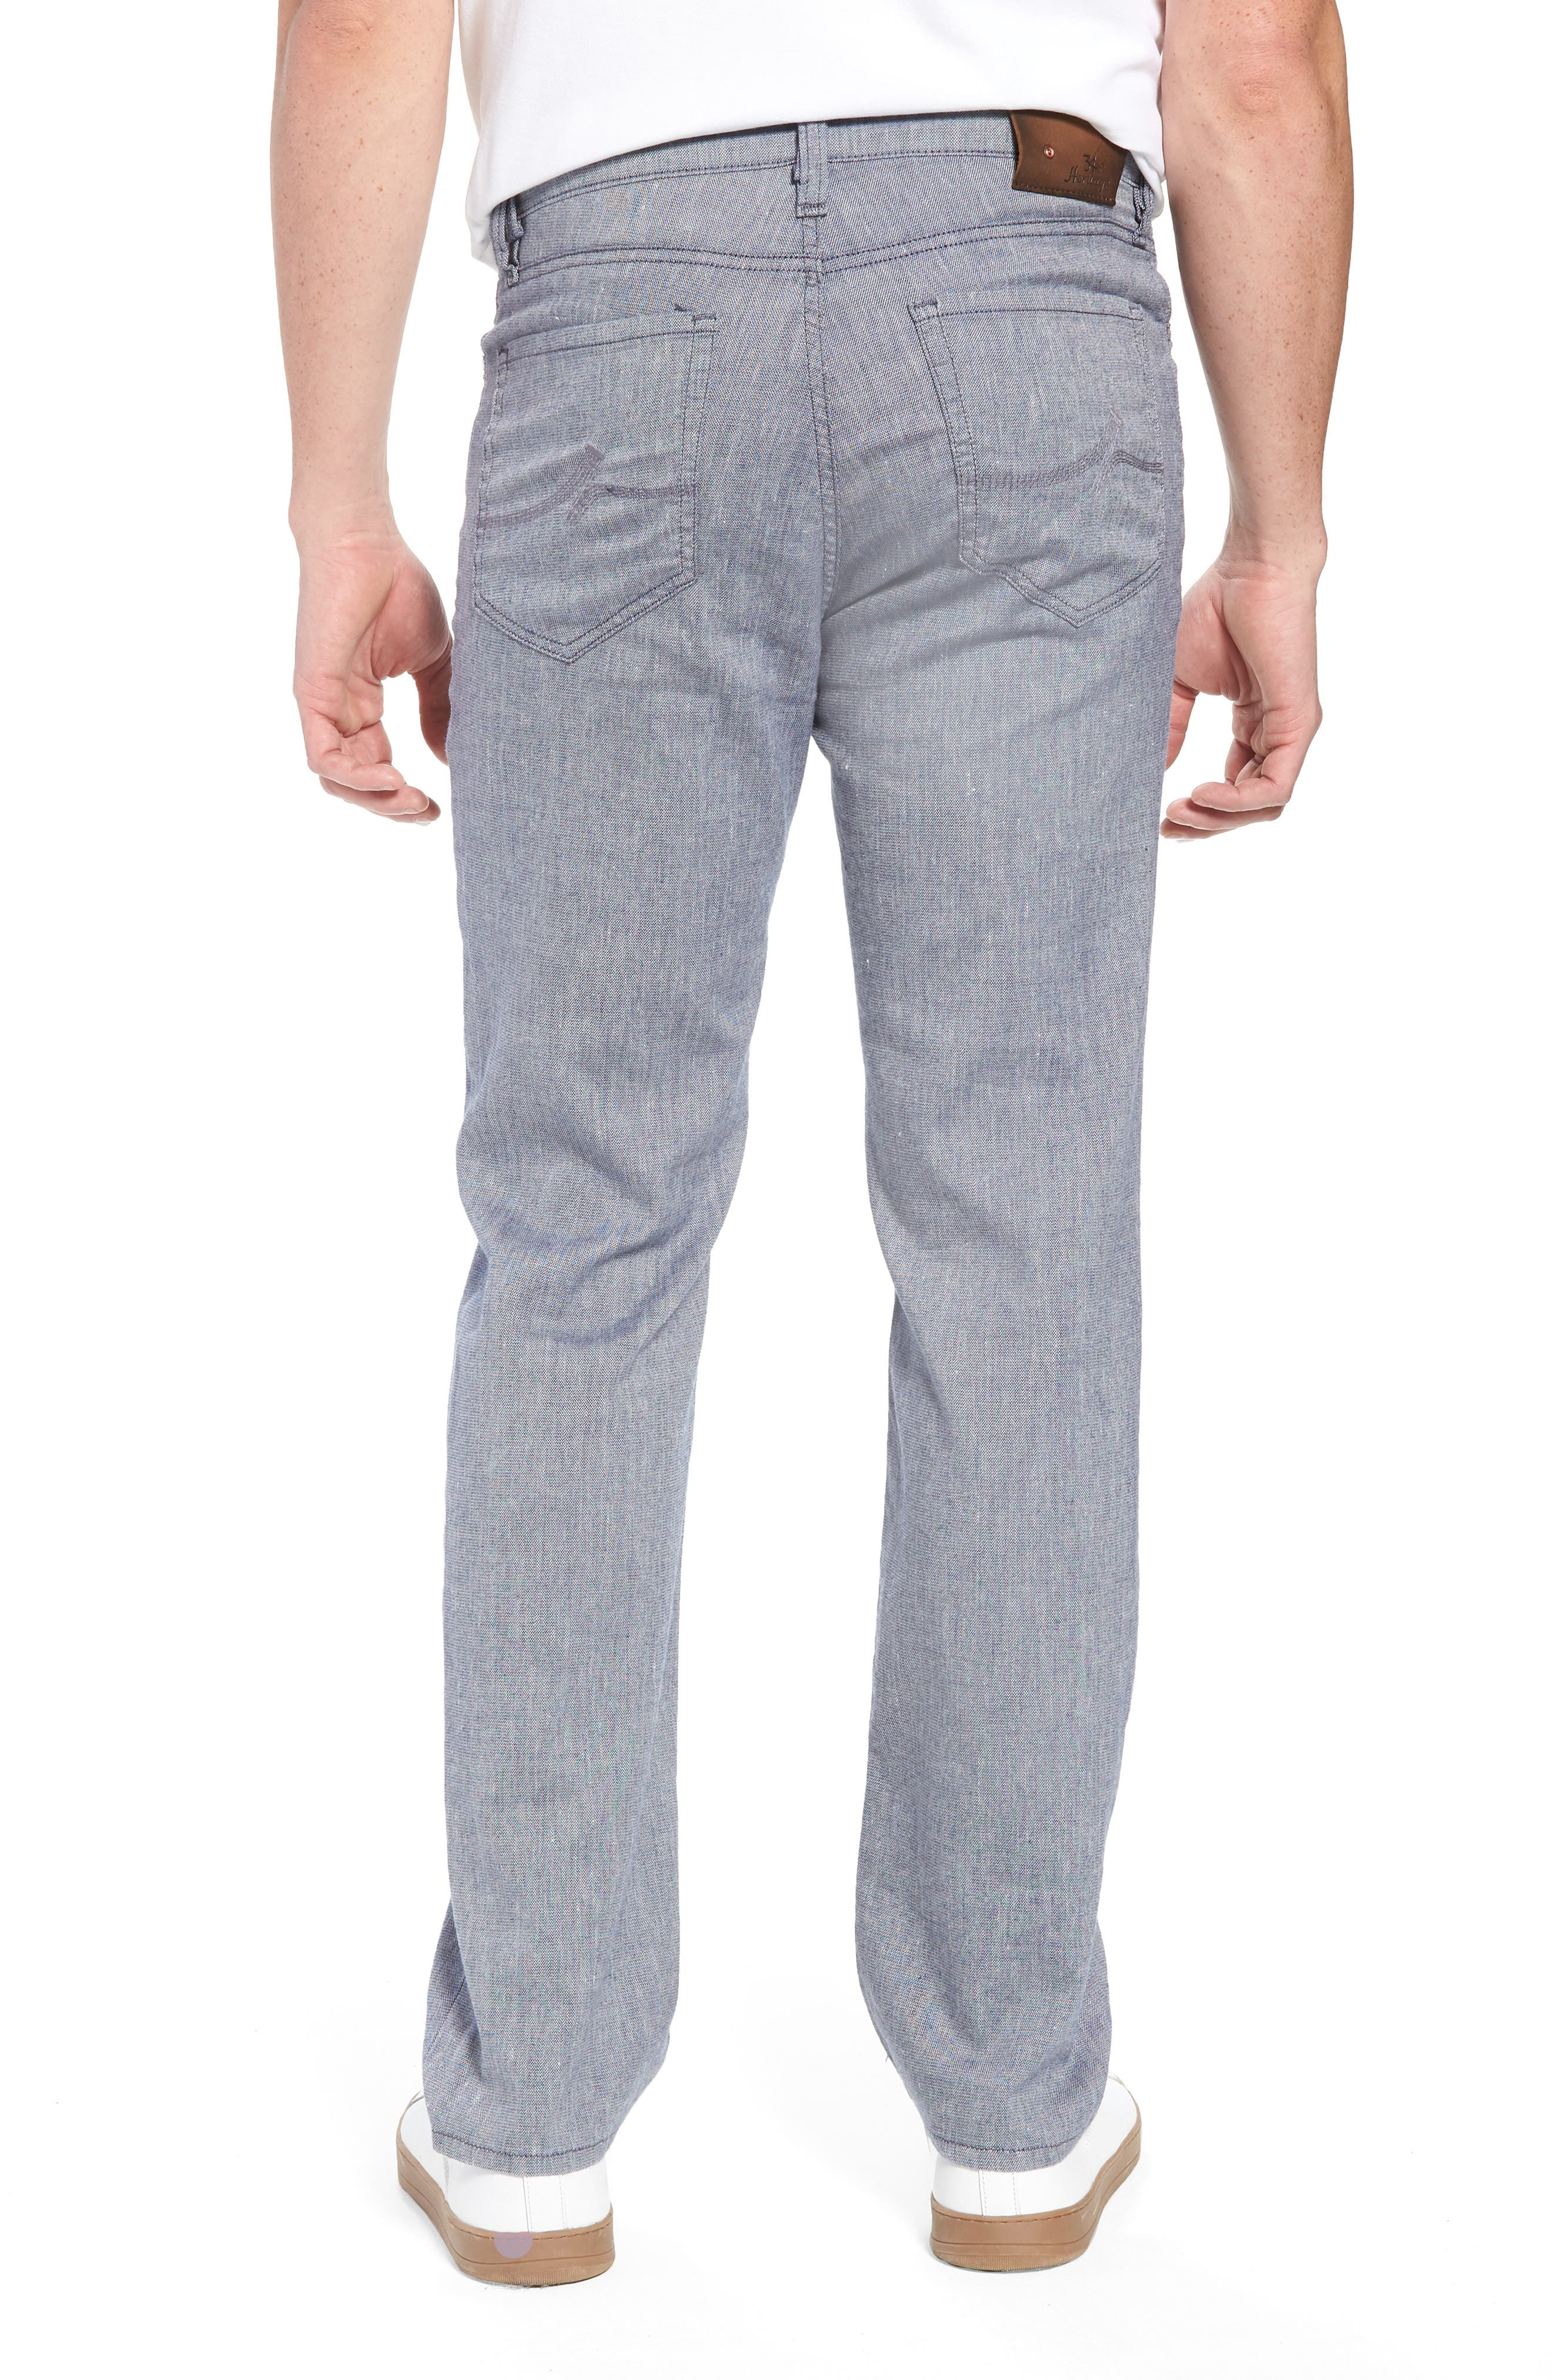 Charisma Relaxed Fit Pants,                             Alternate thumbnail 2, color,                             INDIGO TEXTURED